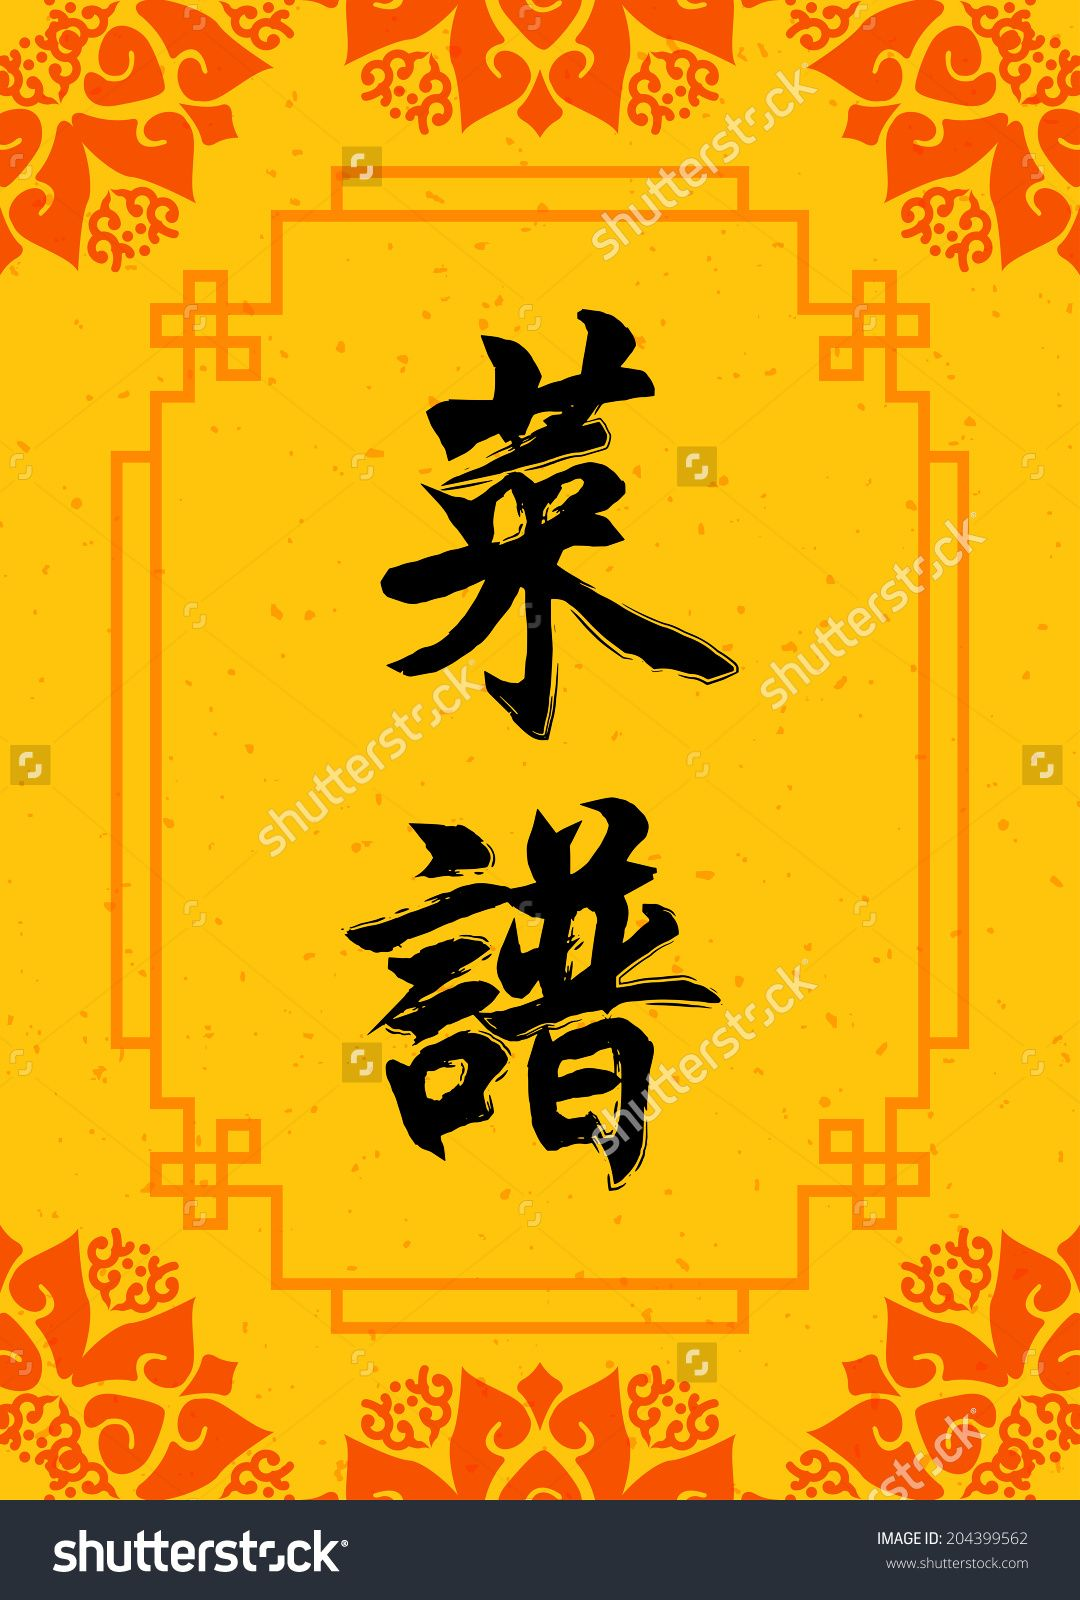 chinese restaurant menu design / chinese food background stock